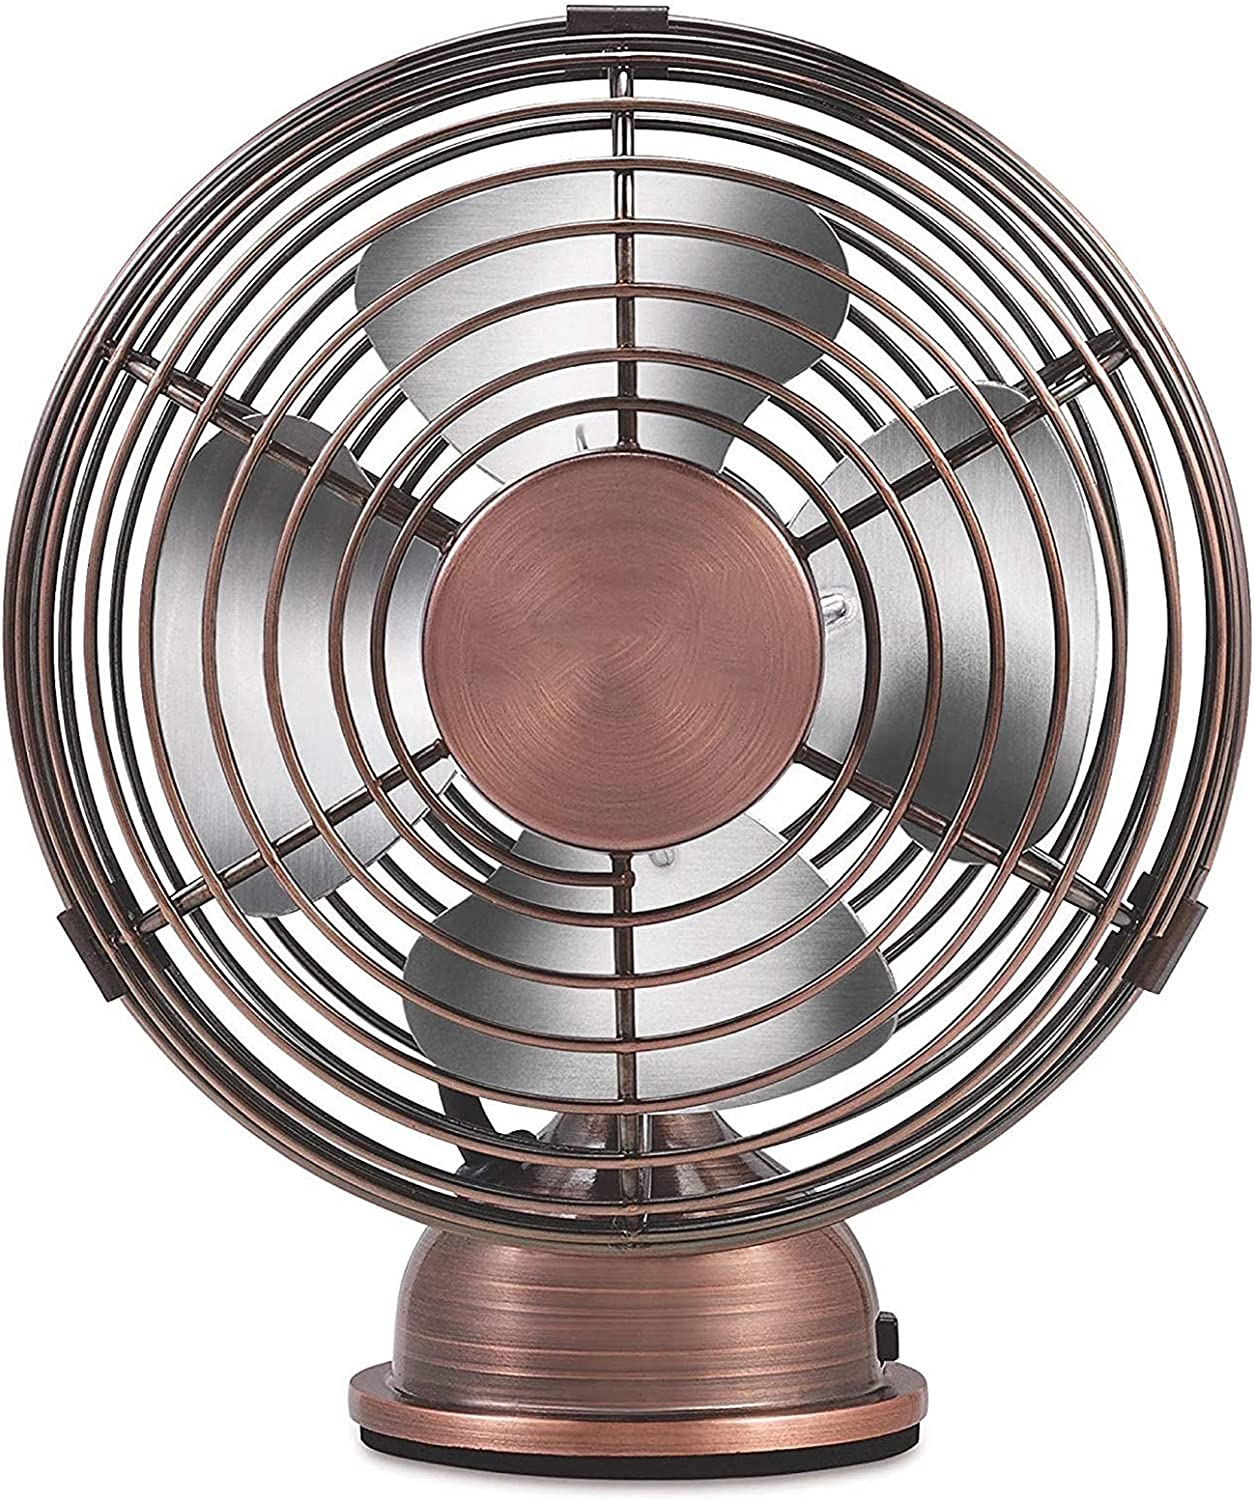 SHUILV 4-Inch Mini USB Desk Fan Copper Computer We OFFer Safety and trust at cheap prices Retro Brushed U